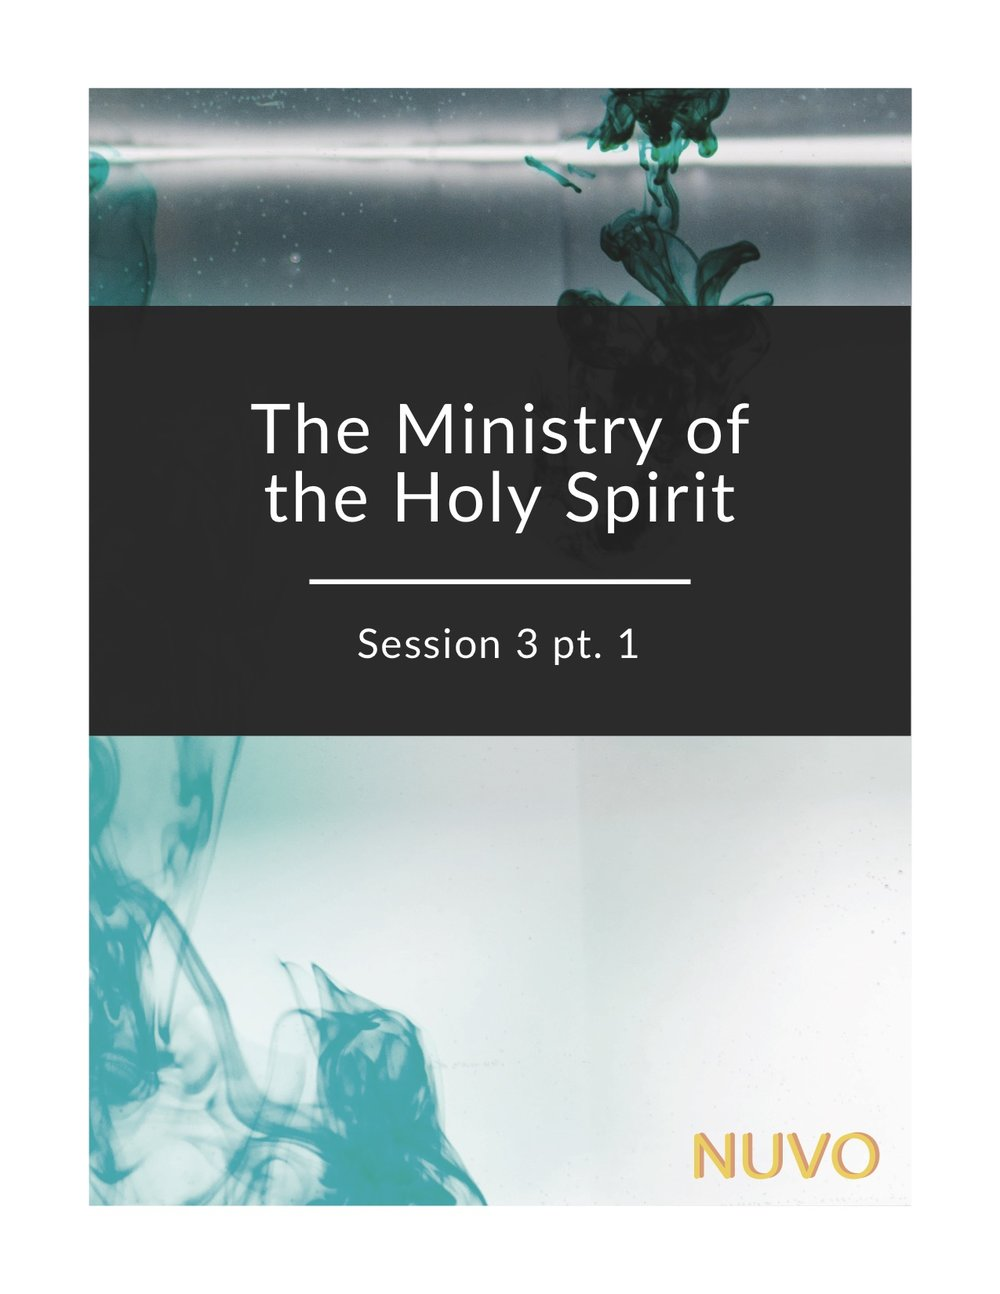 s03-pt1-the-ministry-of-the-holy-spirit.jpg